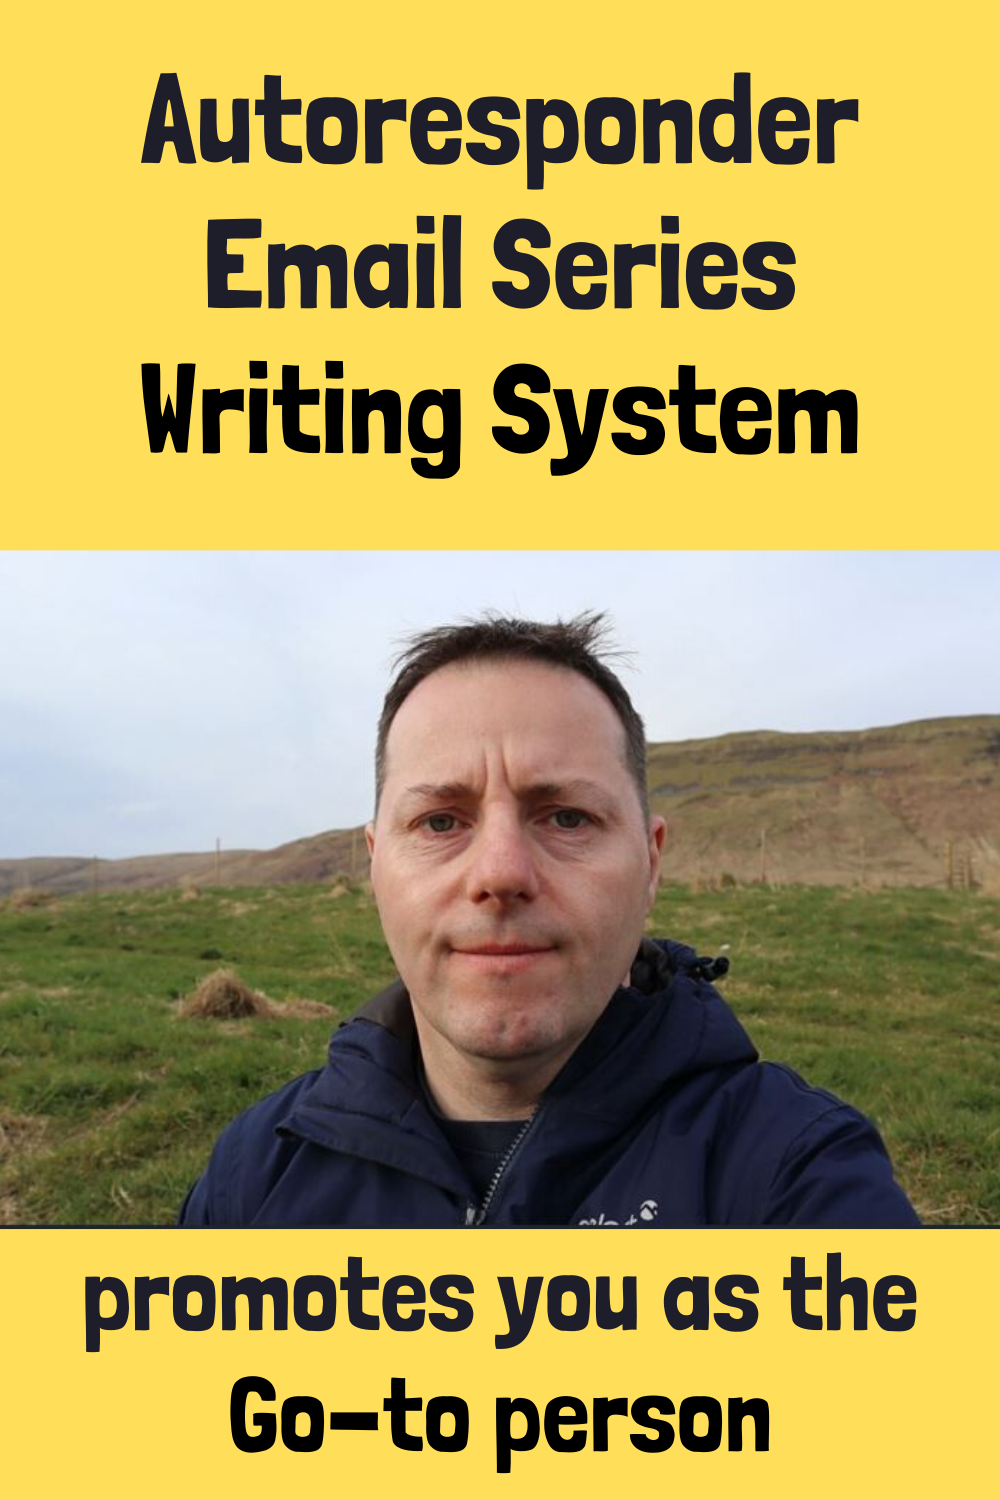 Autoresponder Email Series Writing System